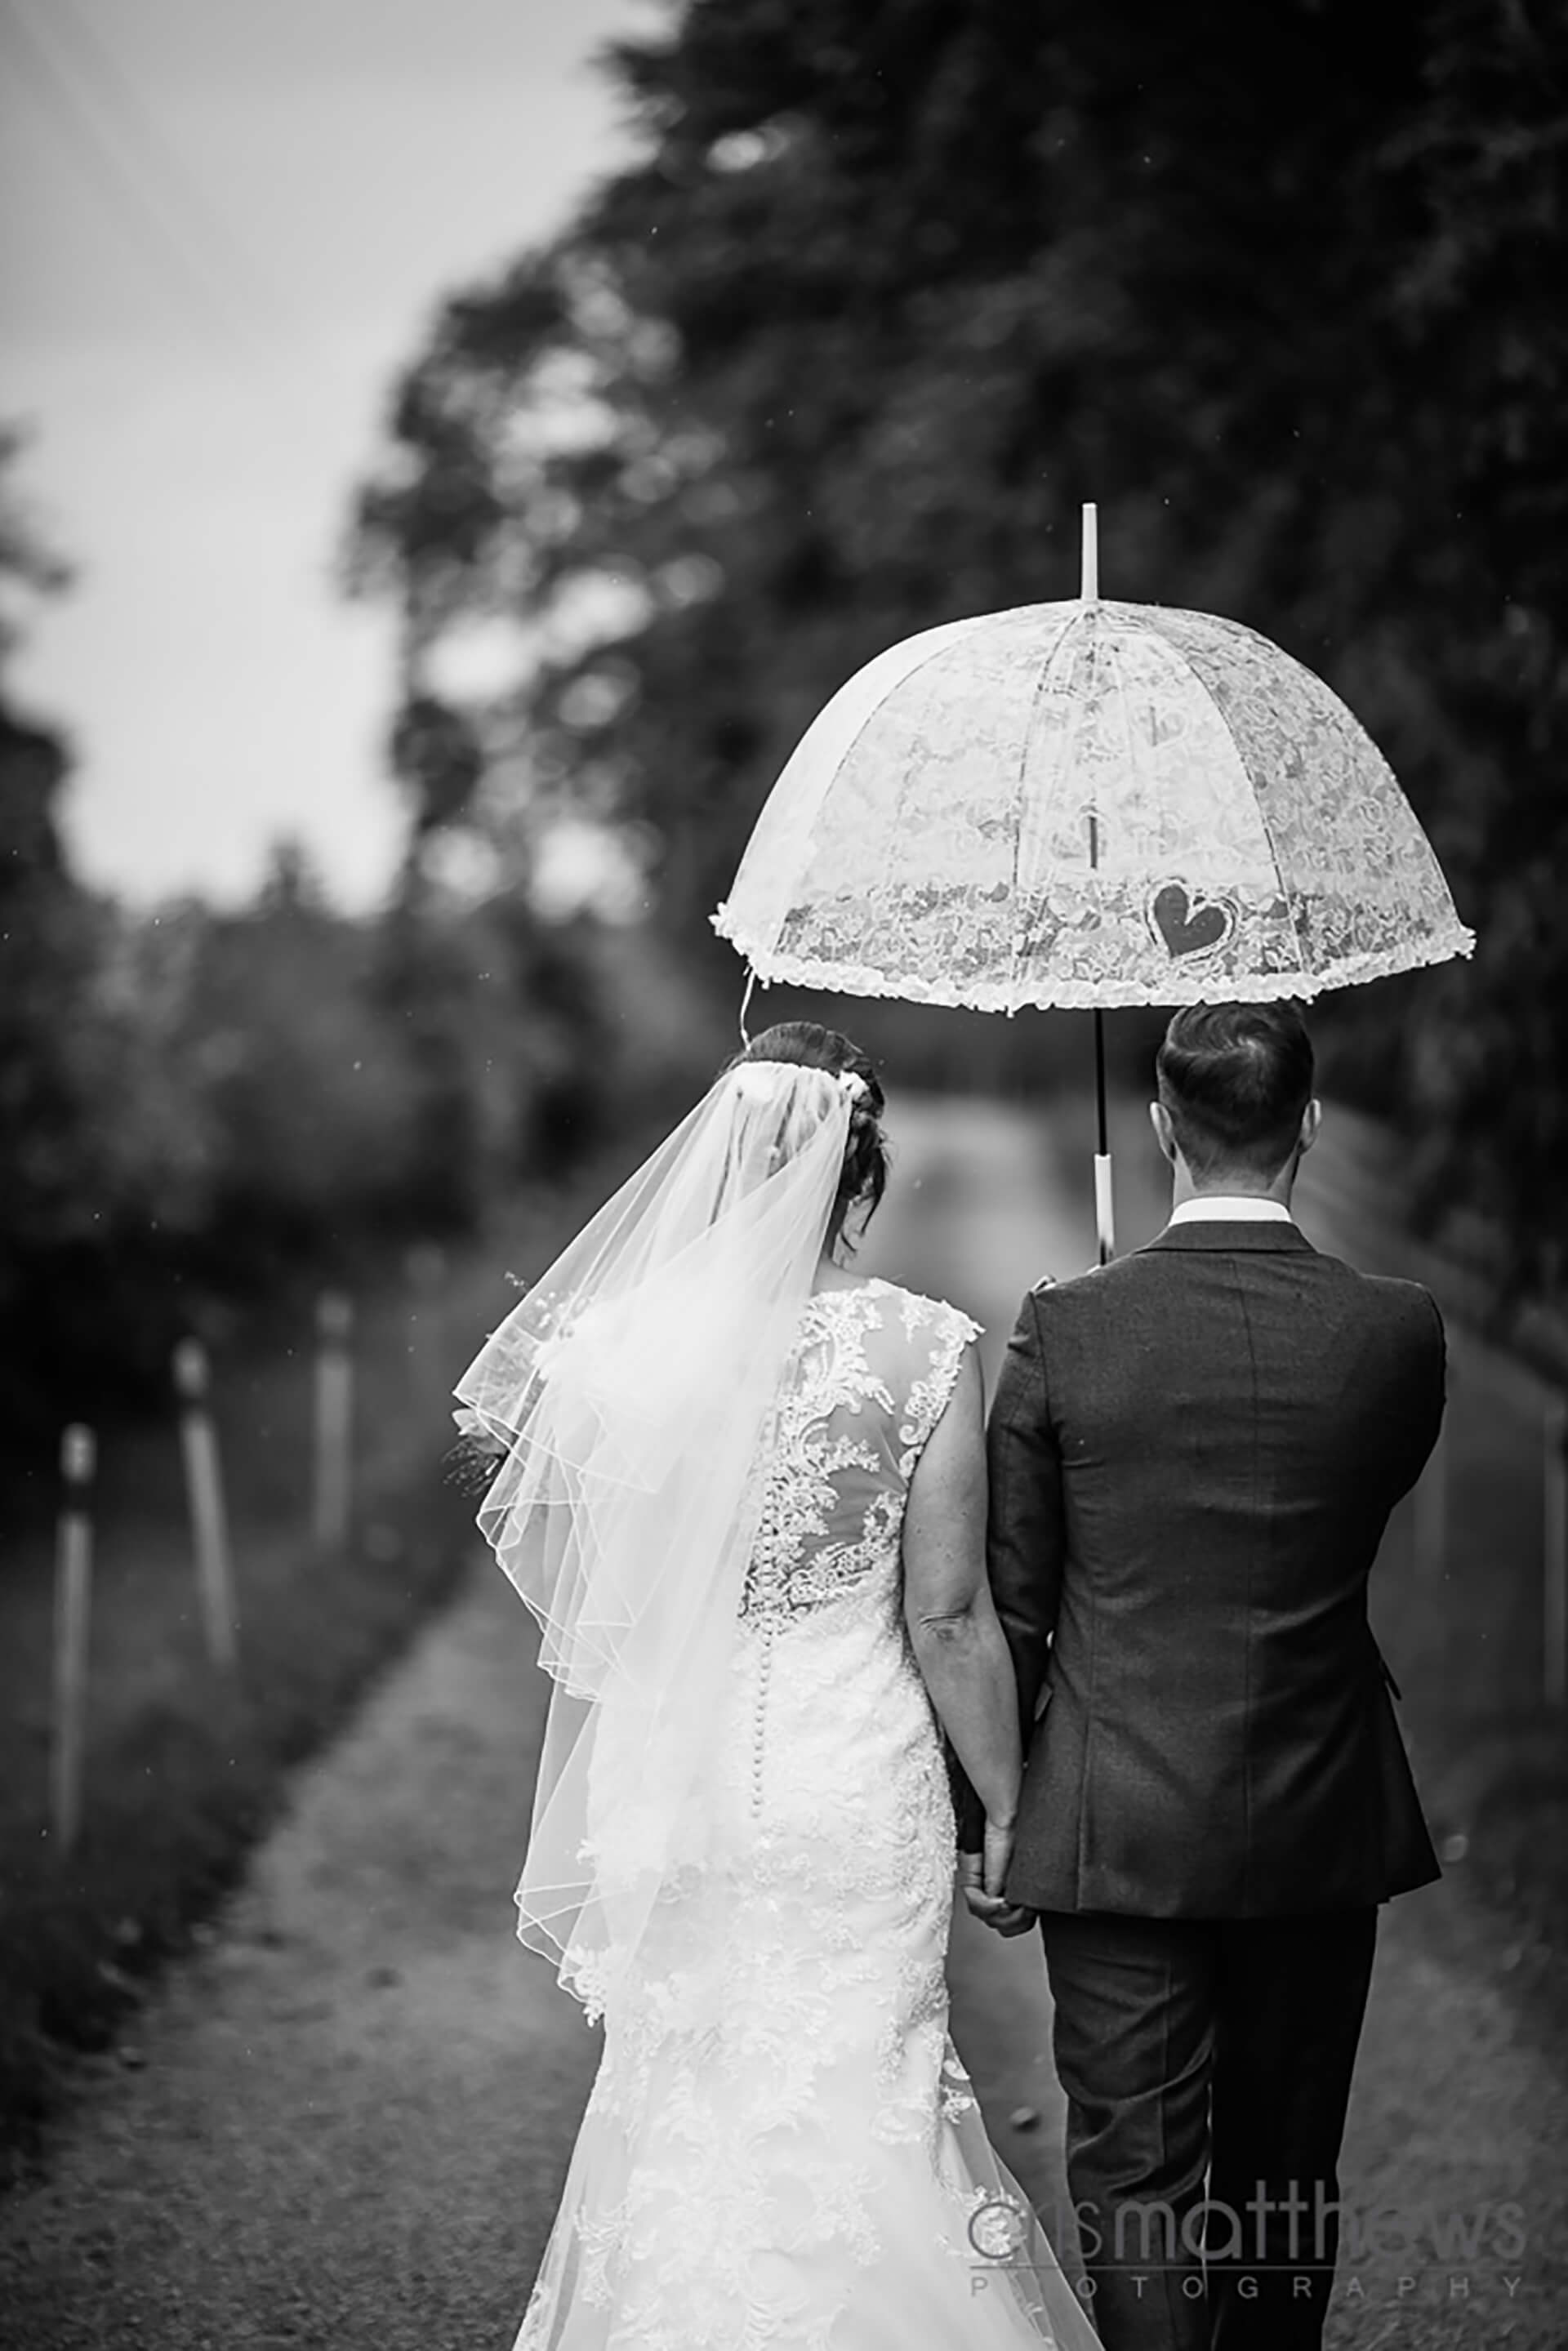 "Come Rain or Shine, Rachel and Dan captured by <a href=""http://www.crismatthews.com/"">Chris Matthews Photography</a>."